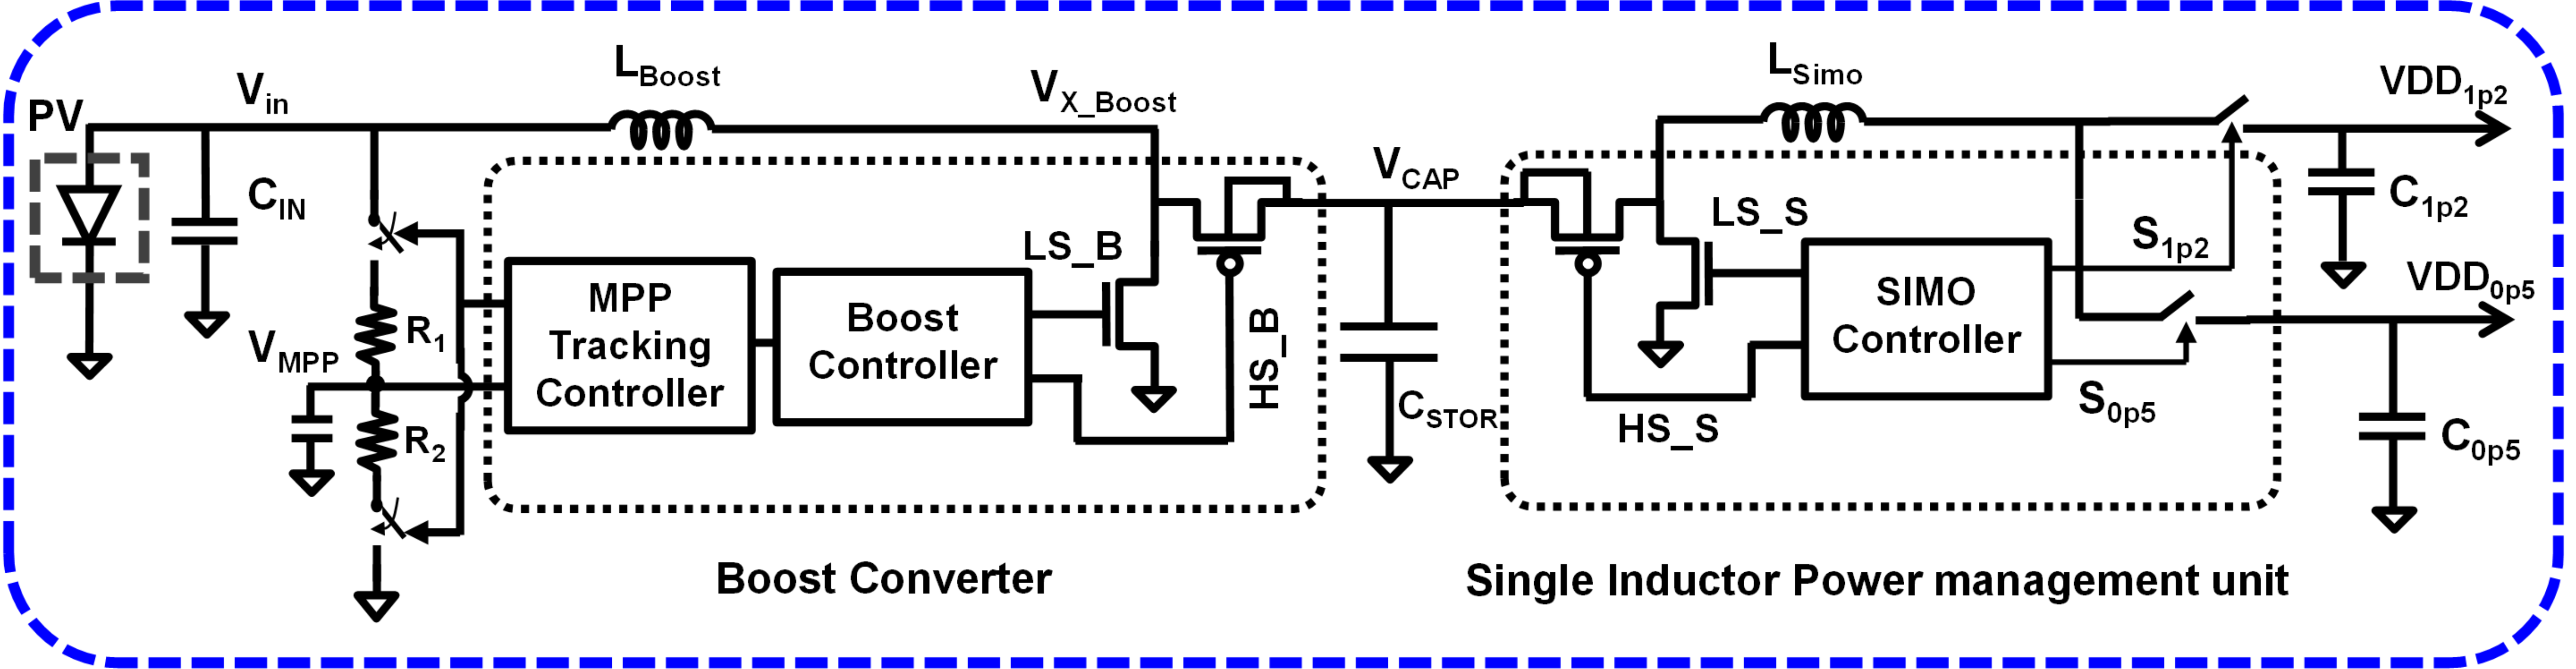 Battery Less Internet Of Things Iot System On Chip Soc Robust Cell Phone Detector Circuit Diagram Zero Crossing And A To Minimize Conduction Losses Across The Diode Pmu Also Includes Cold Start With Startup Voltage 220mv